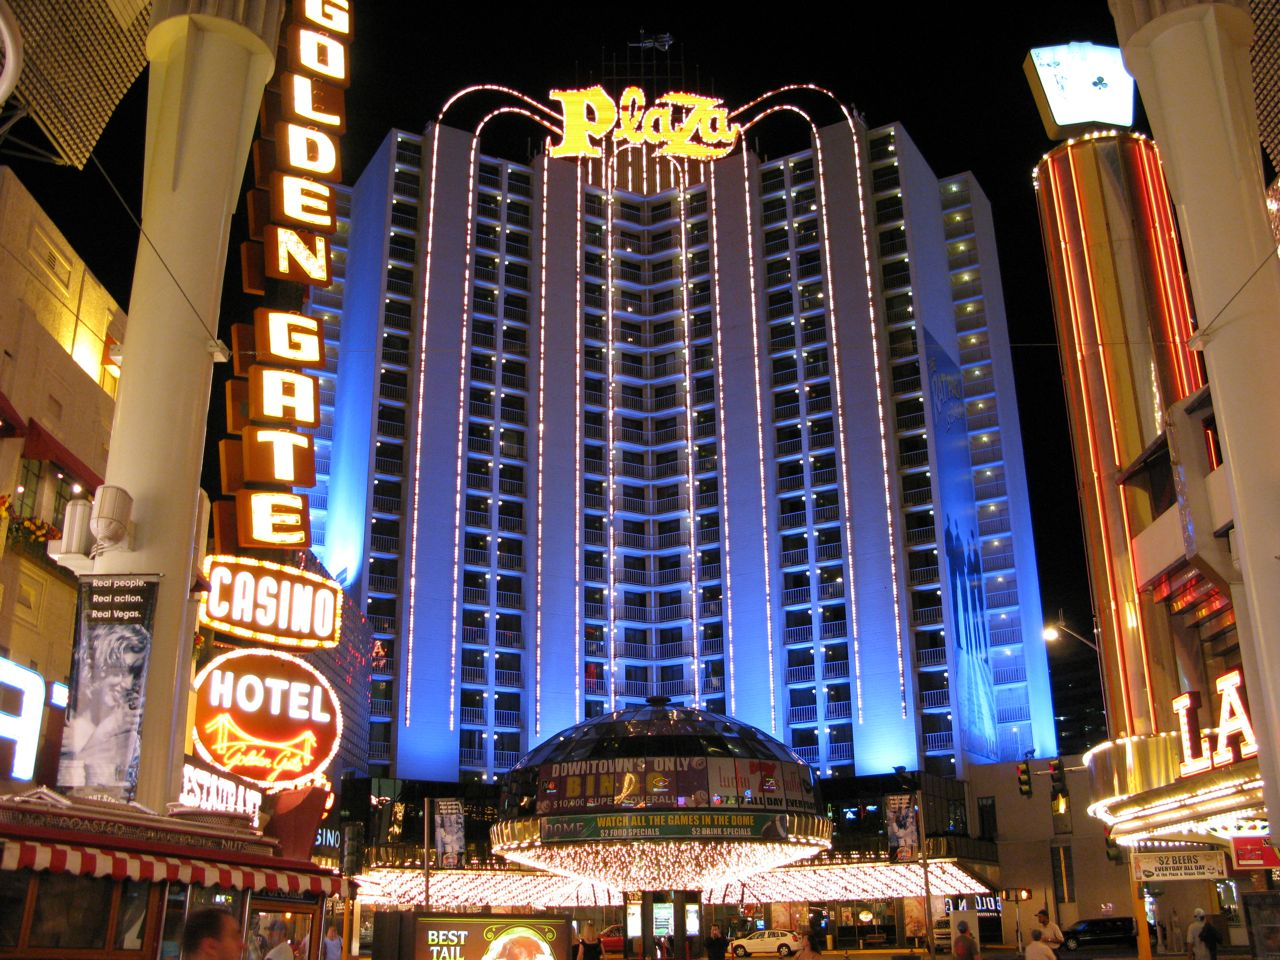 The Plaza Vegas